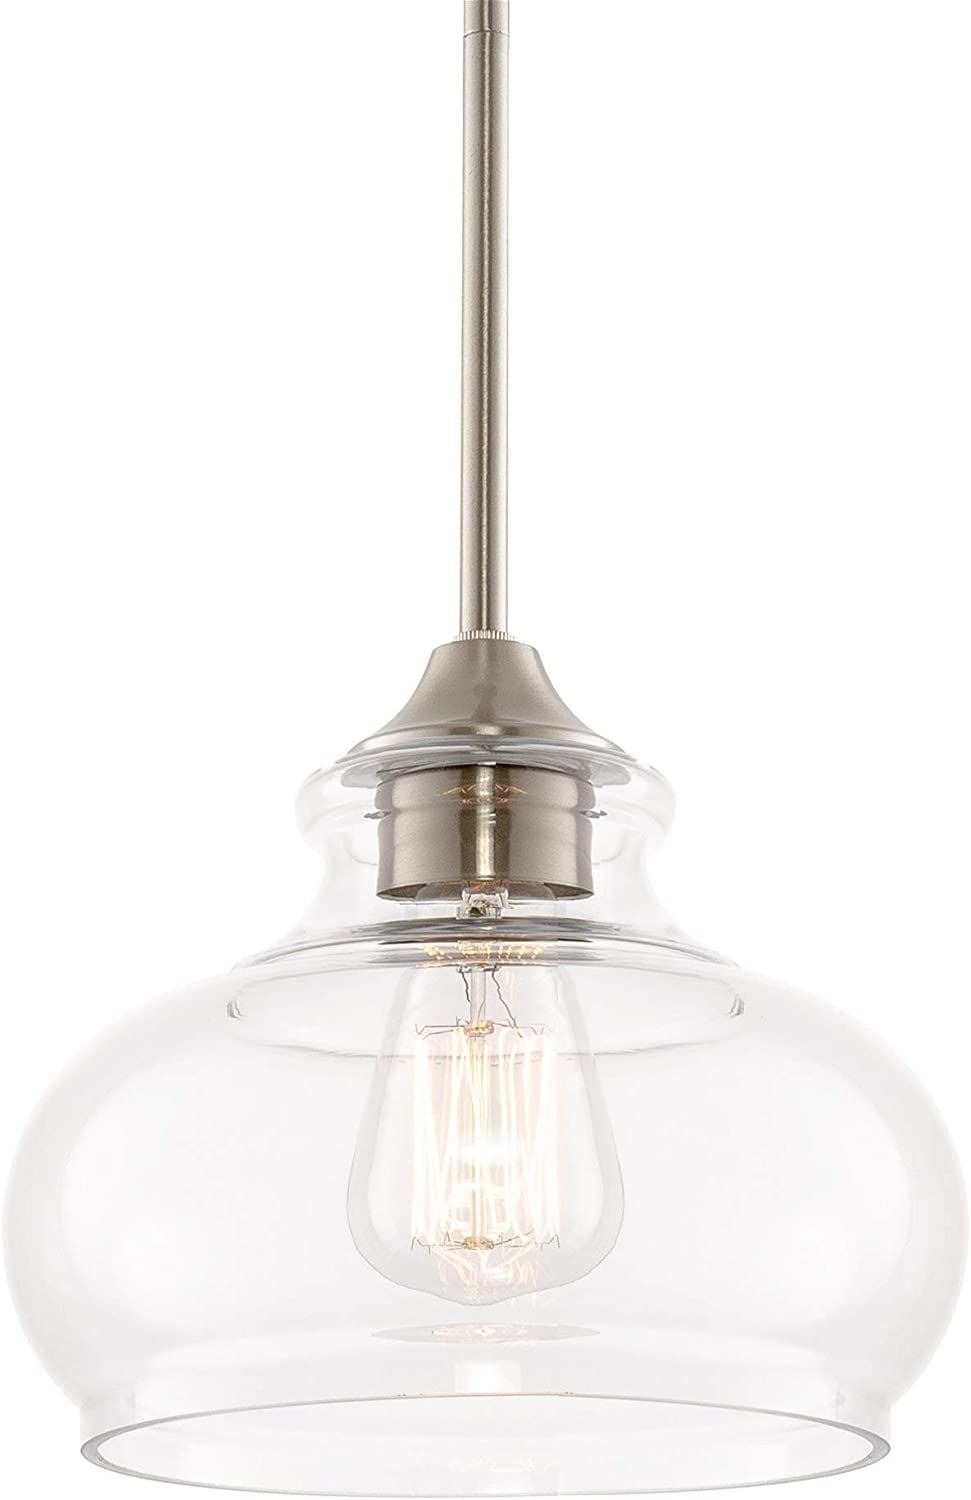 """Kira Home Harlow 9"""" Modern Industrial Farmhouse/Schoolhouse/Rustic Pendant Light with Clear Glass Shade, Adjustable Hanging Height, Brushed Nickel Finish"""